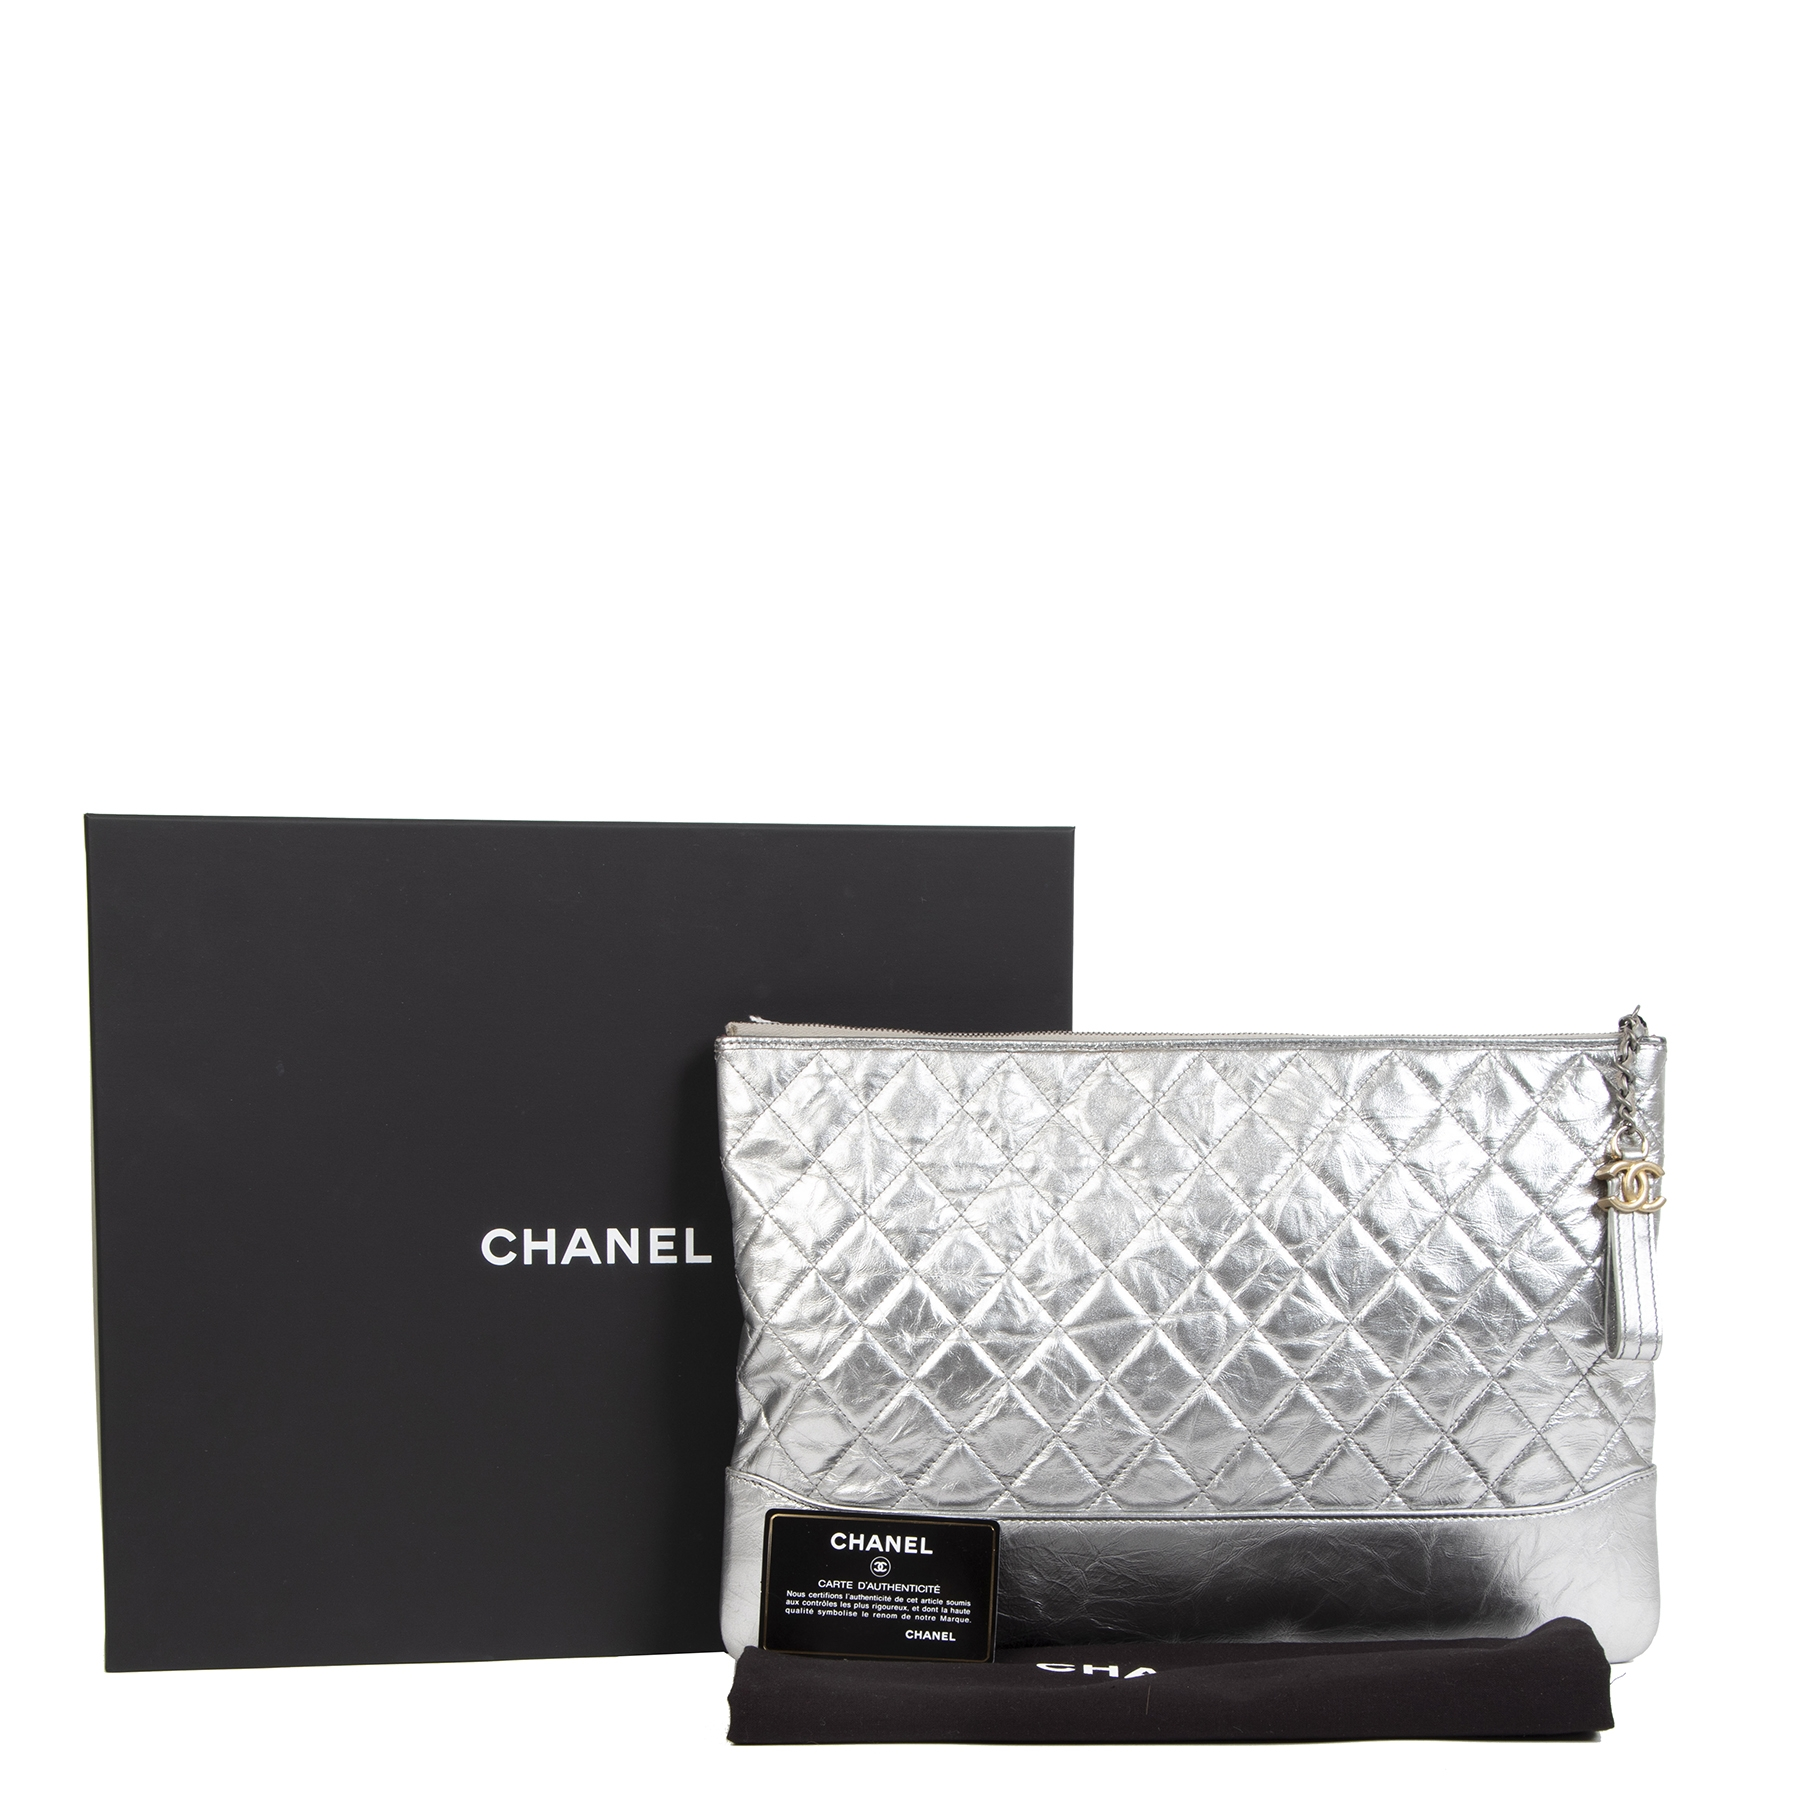 Authentique seconde-main vintage Chanel Gabrielle O Case Silver Metallic Quilted Leather Clutch achète en ligne webshop LabelLOV